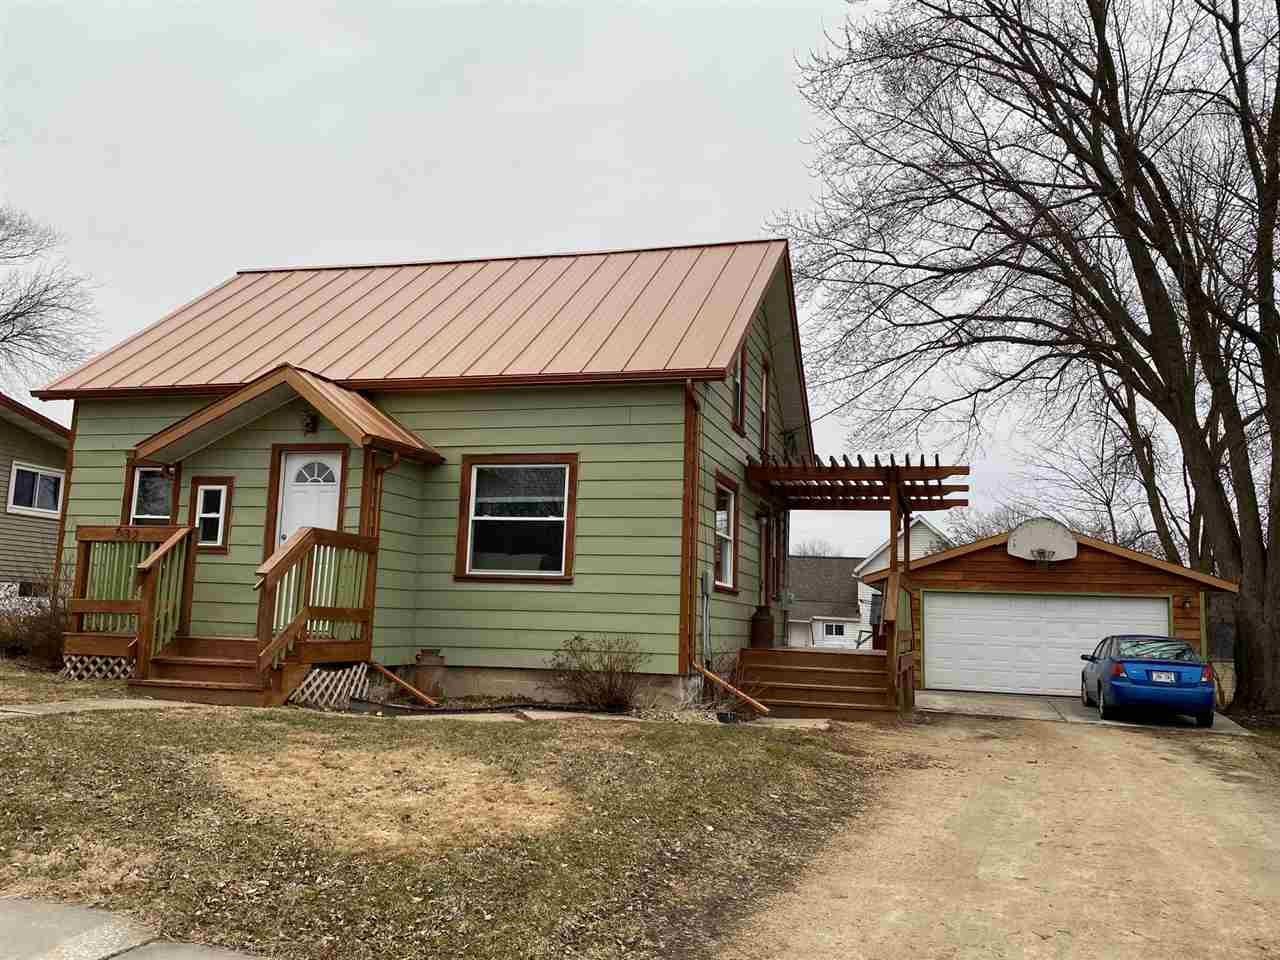 632 Hillsborough Ave, Hillsboro, WI 54634 - #: 1879408